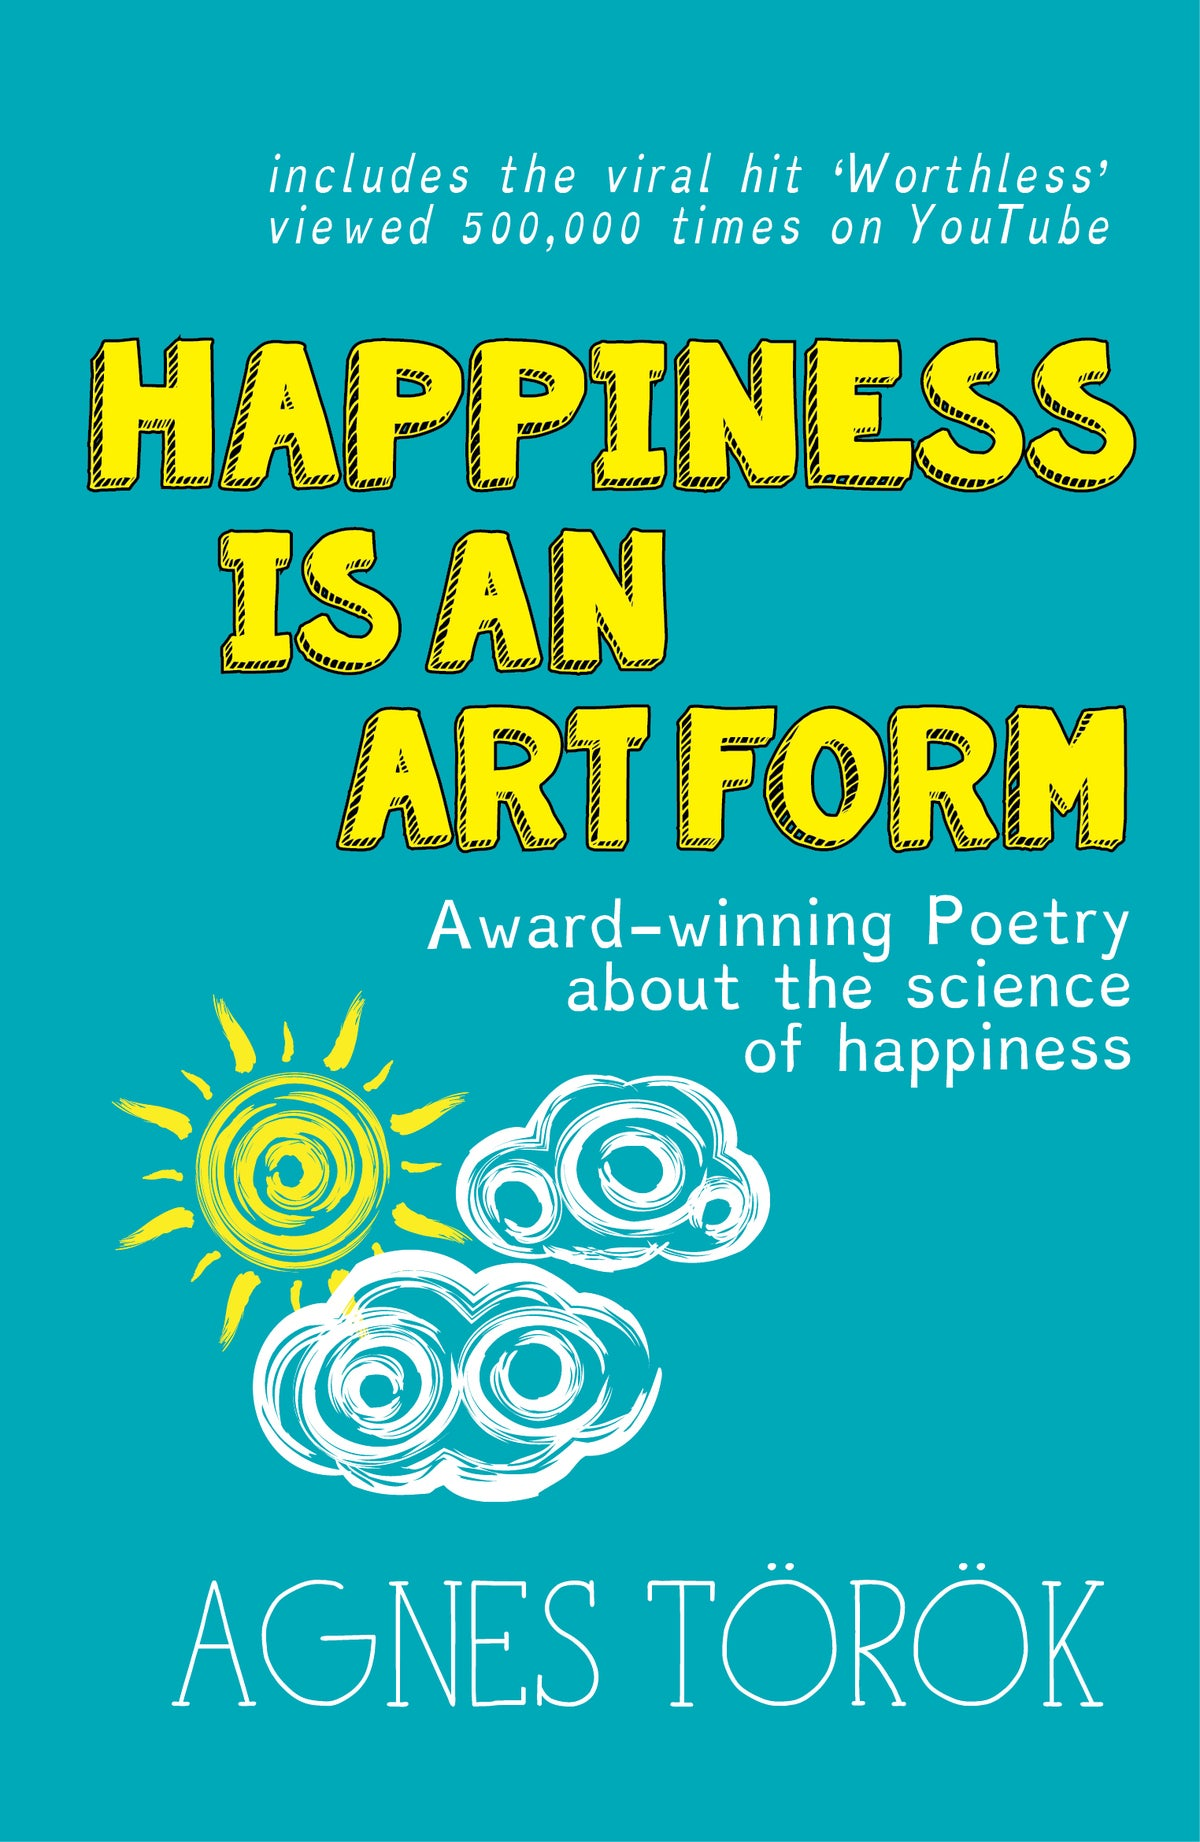 Image of Happiness is an Art Form by Agnes Török